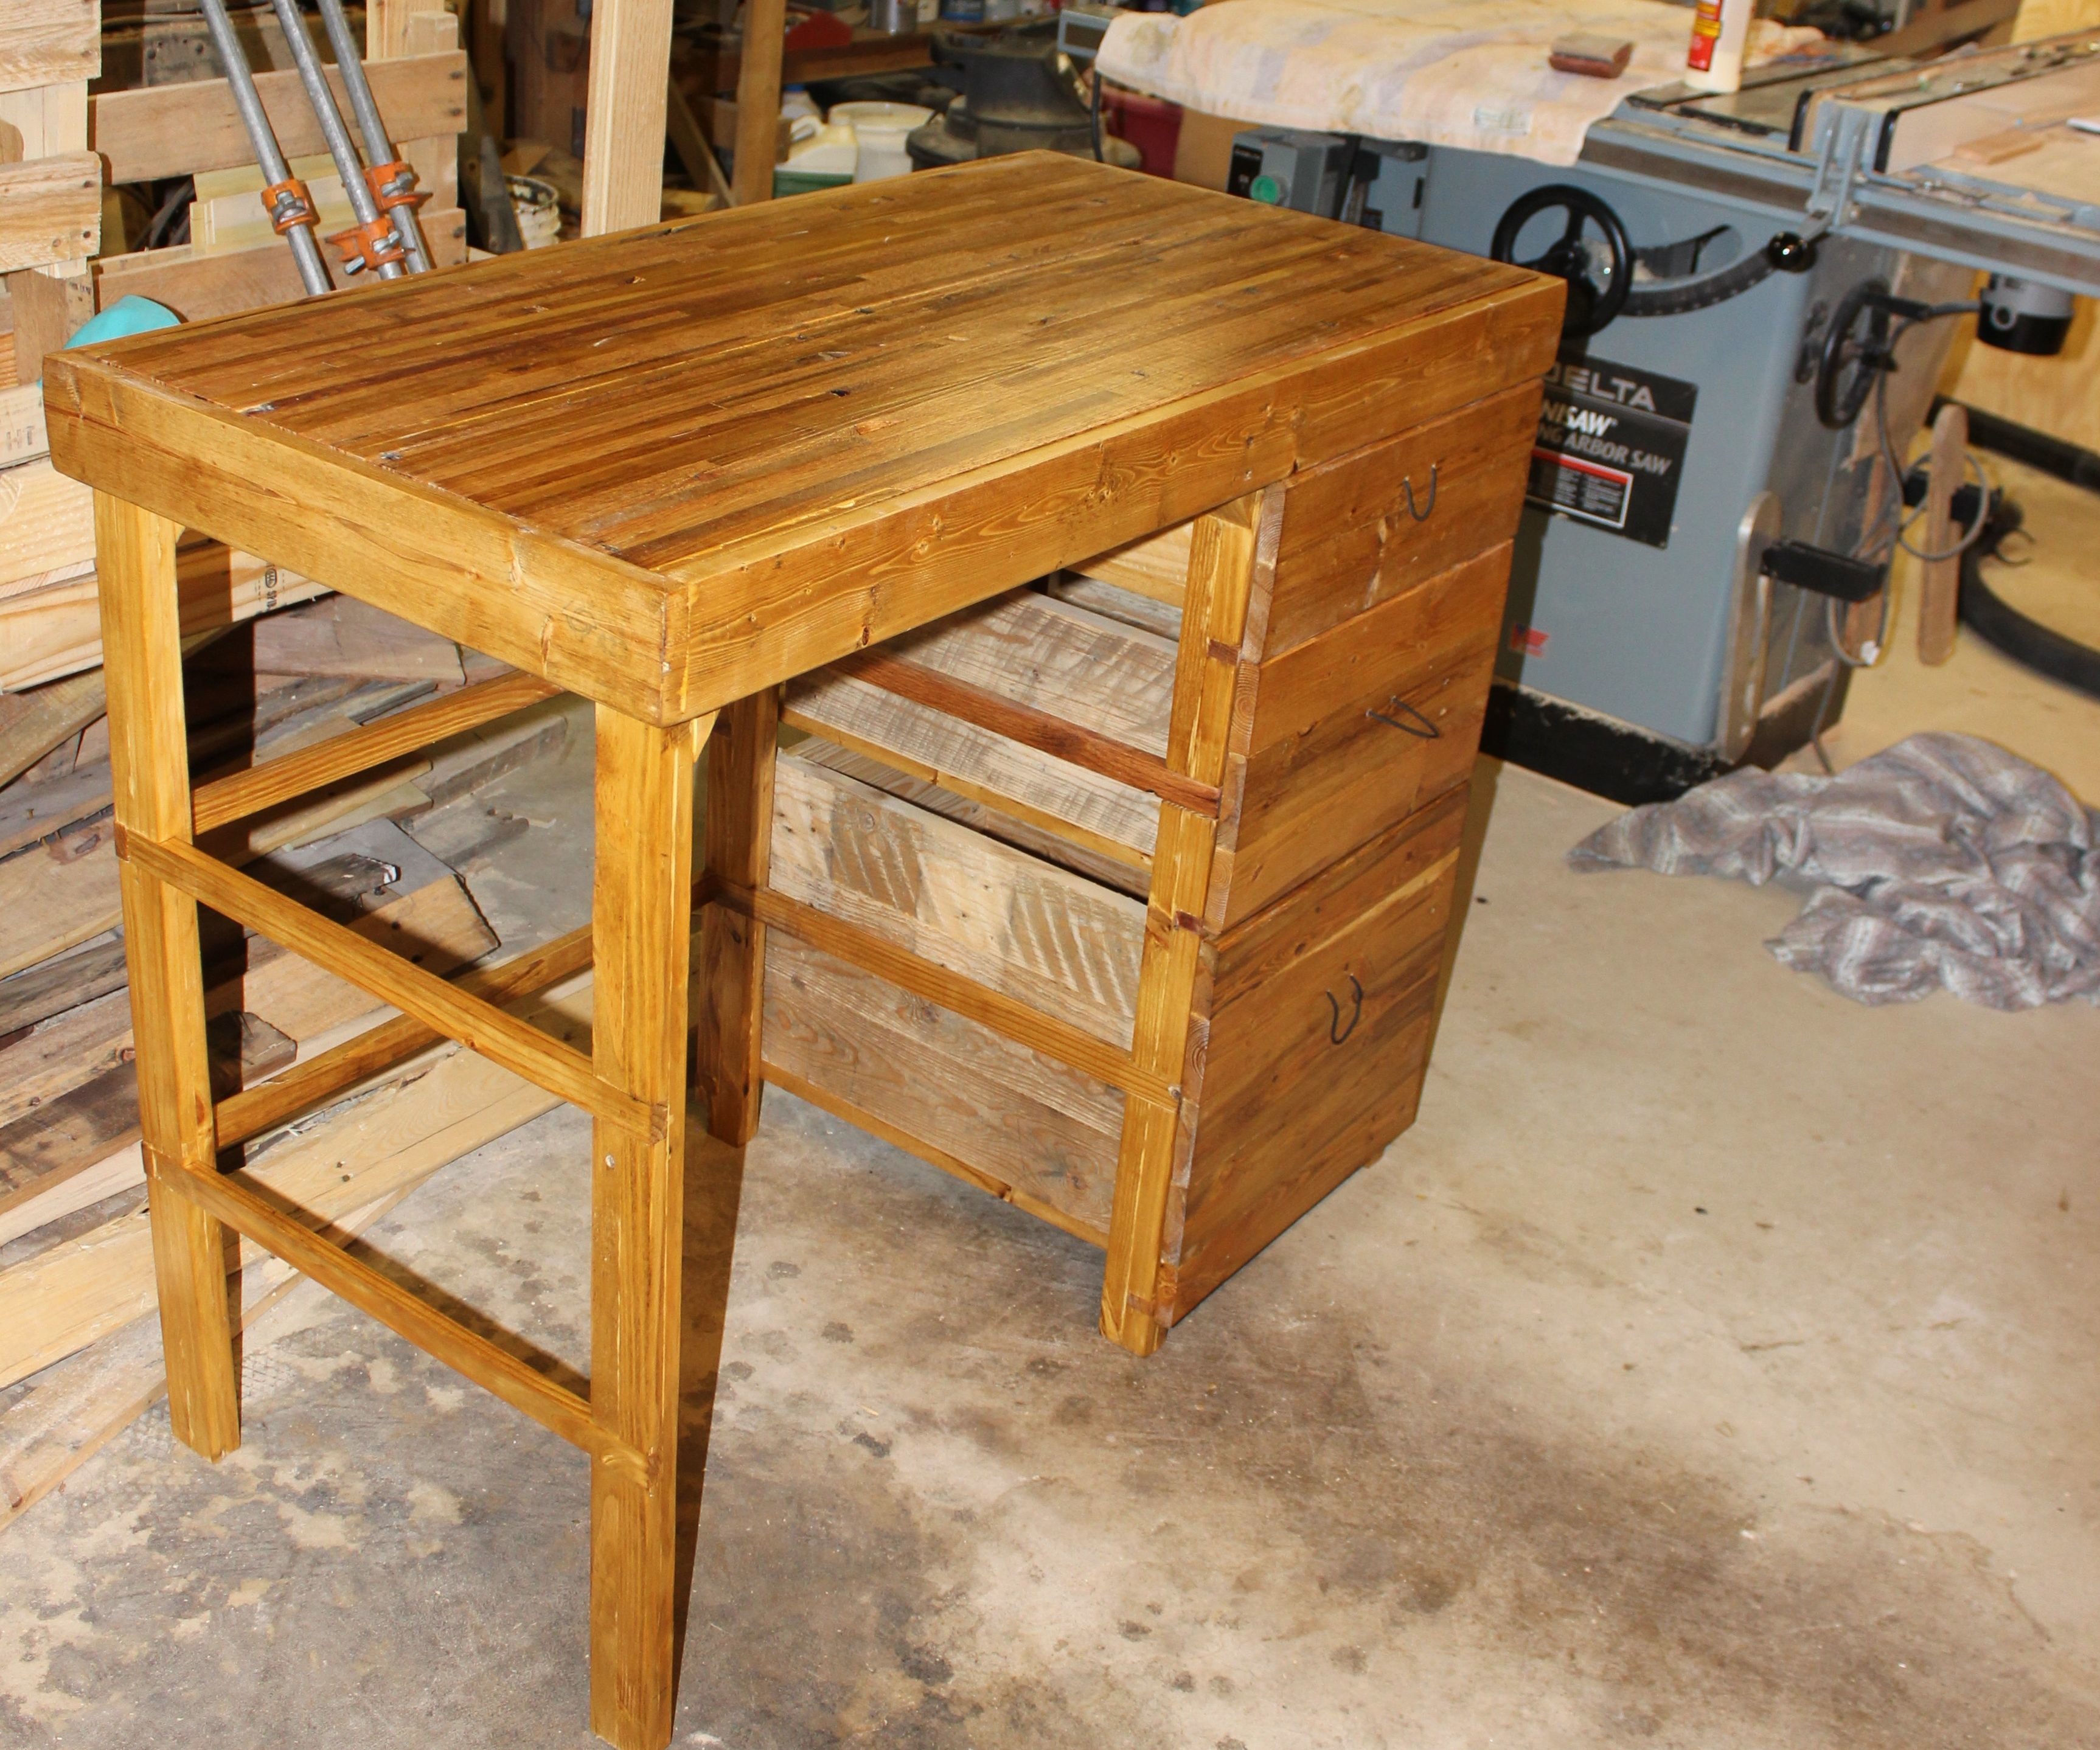 Pallet Desk with Drawers